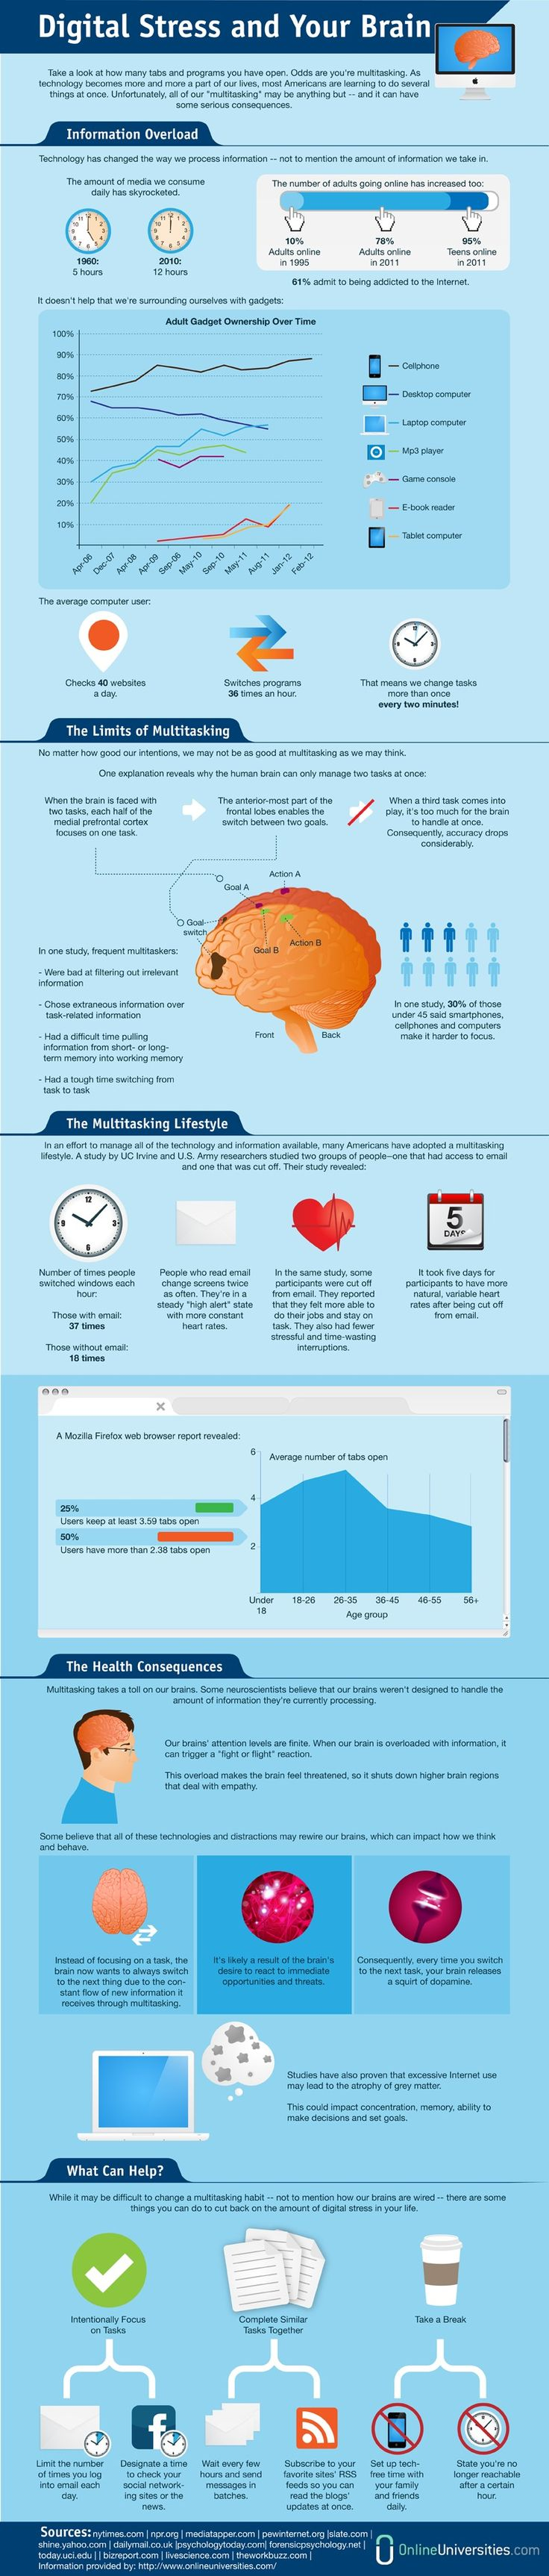 Digital stress and your brain infographic